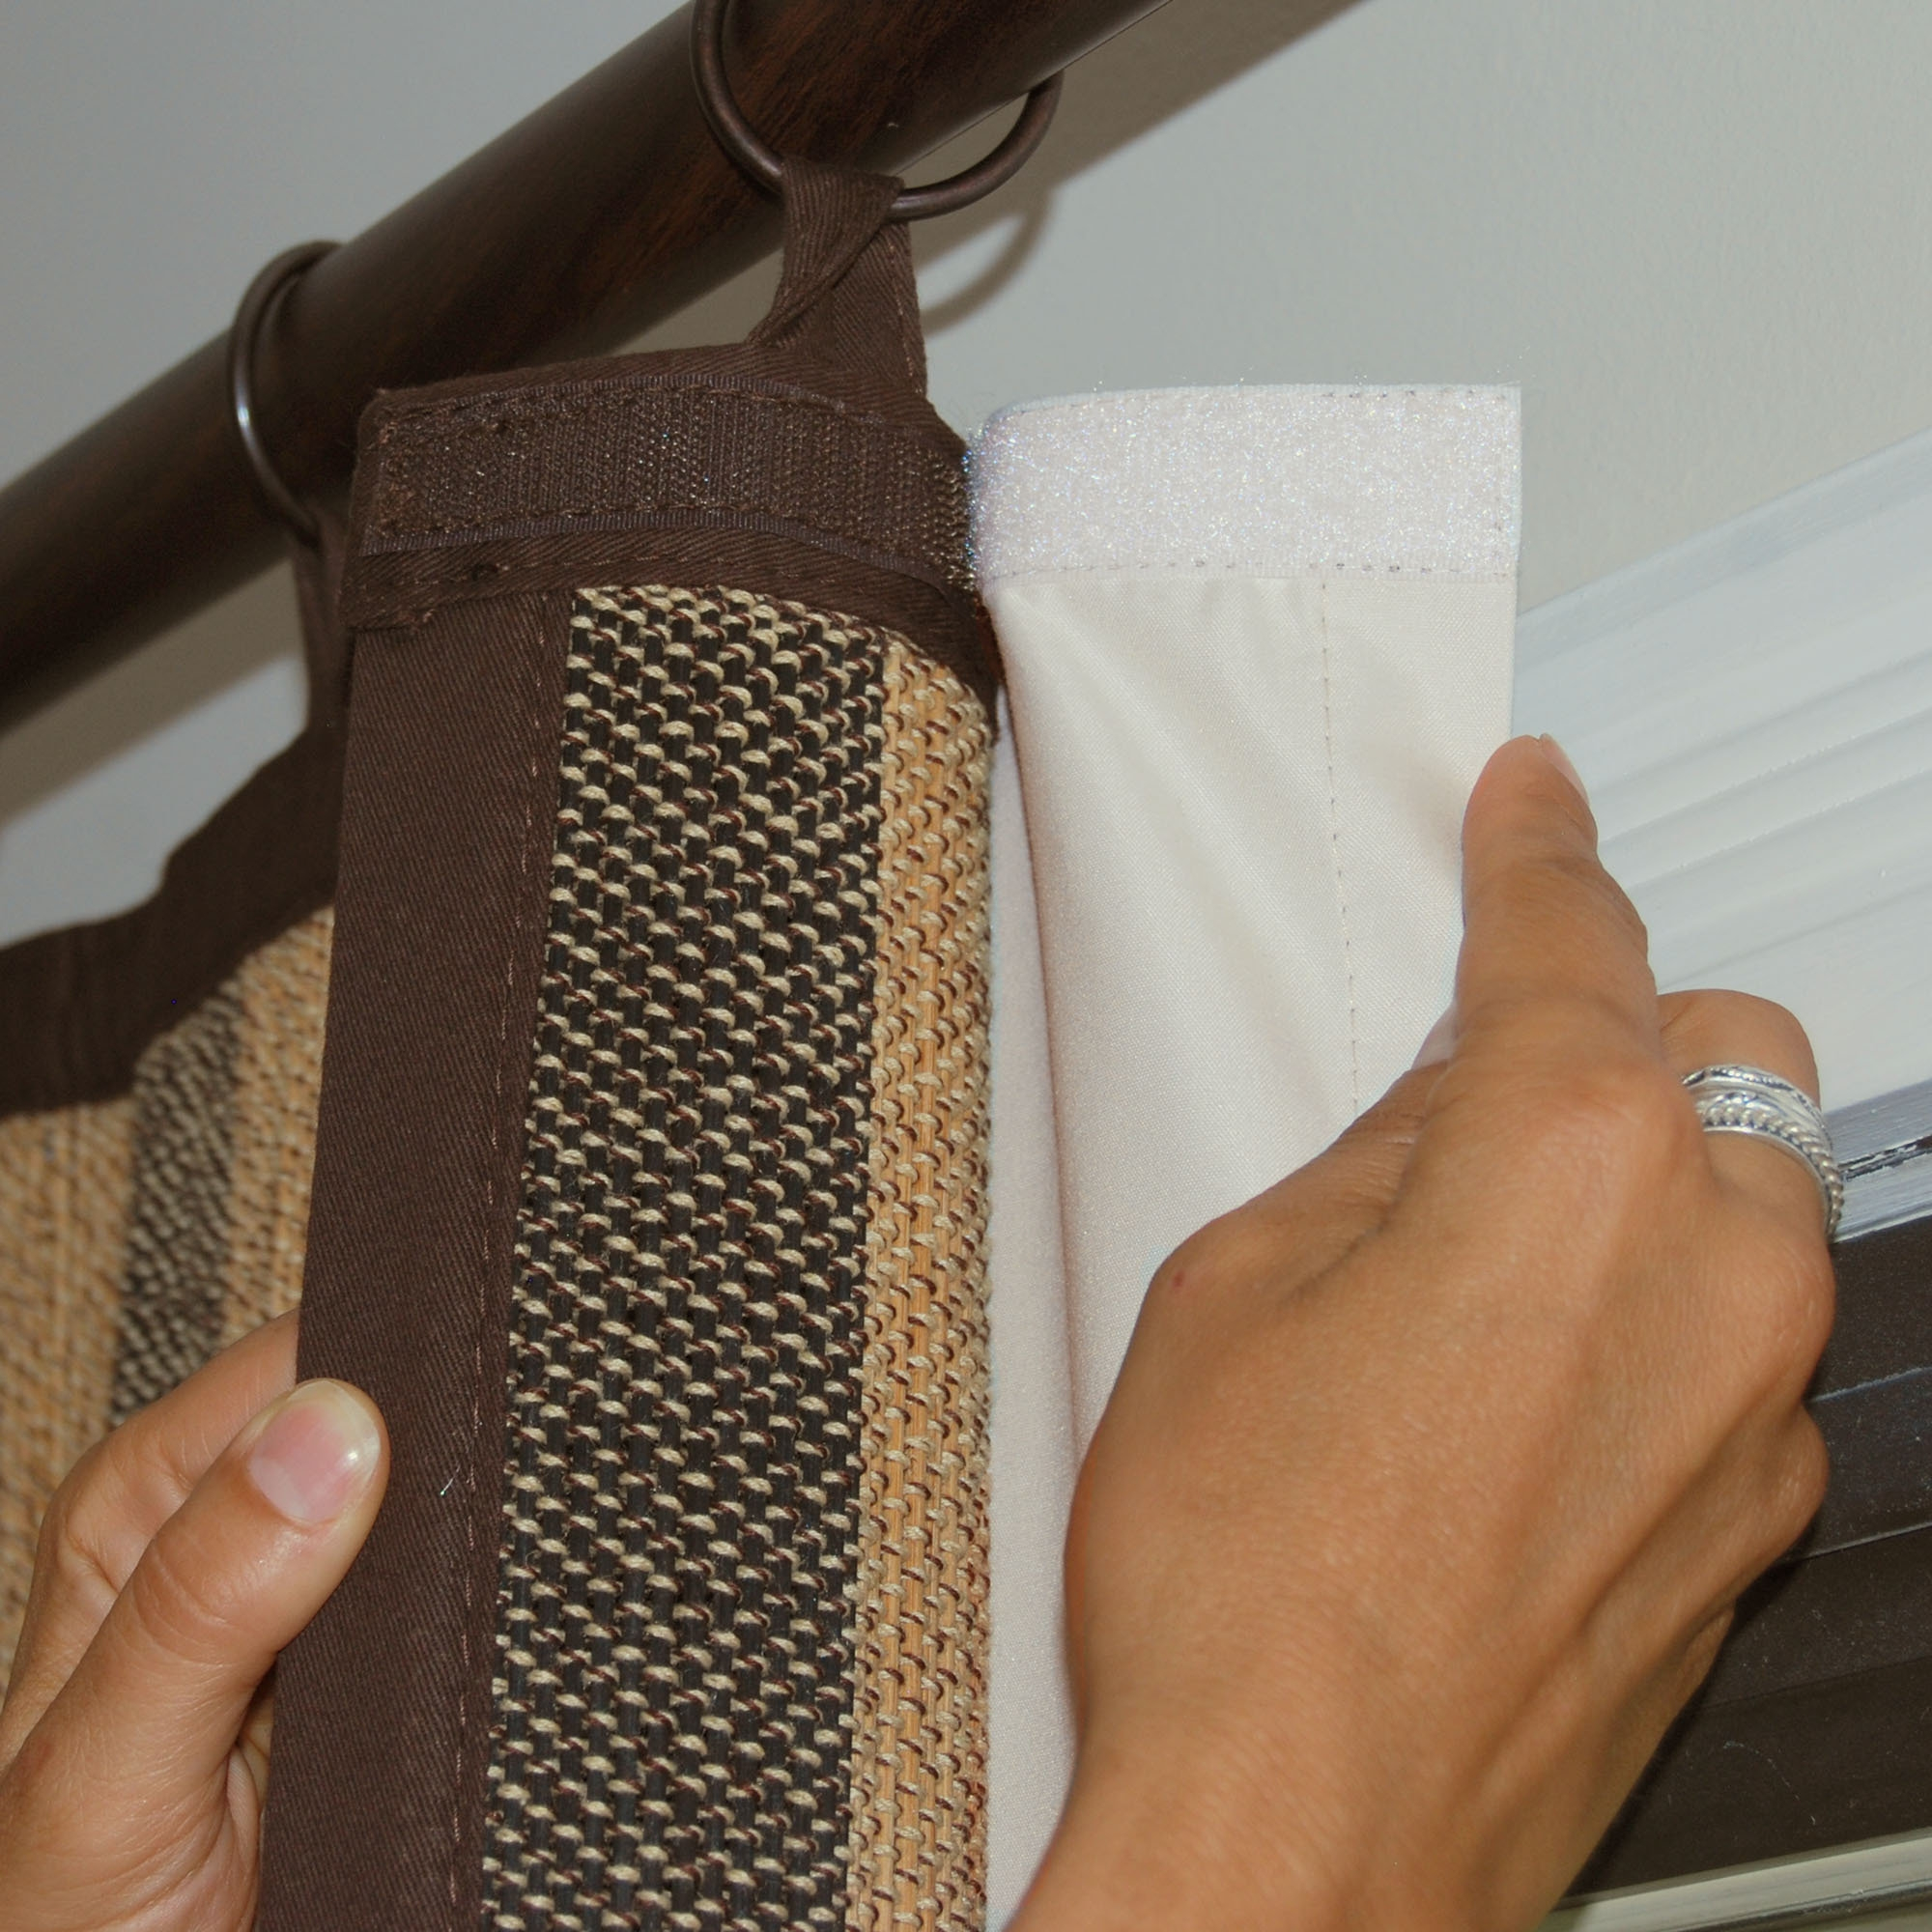 Insulating Blackout Curtain Panel Liner Blackout Curtains In White Curtains With Blackout Lining (View 14 of 15)